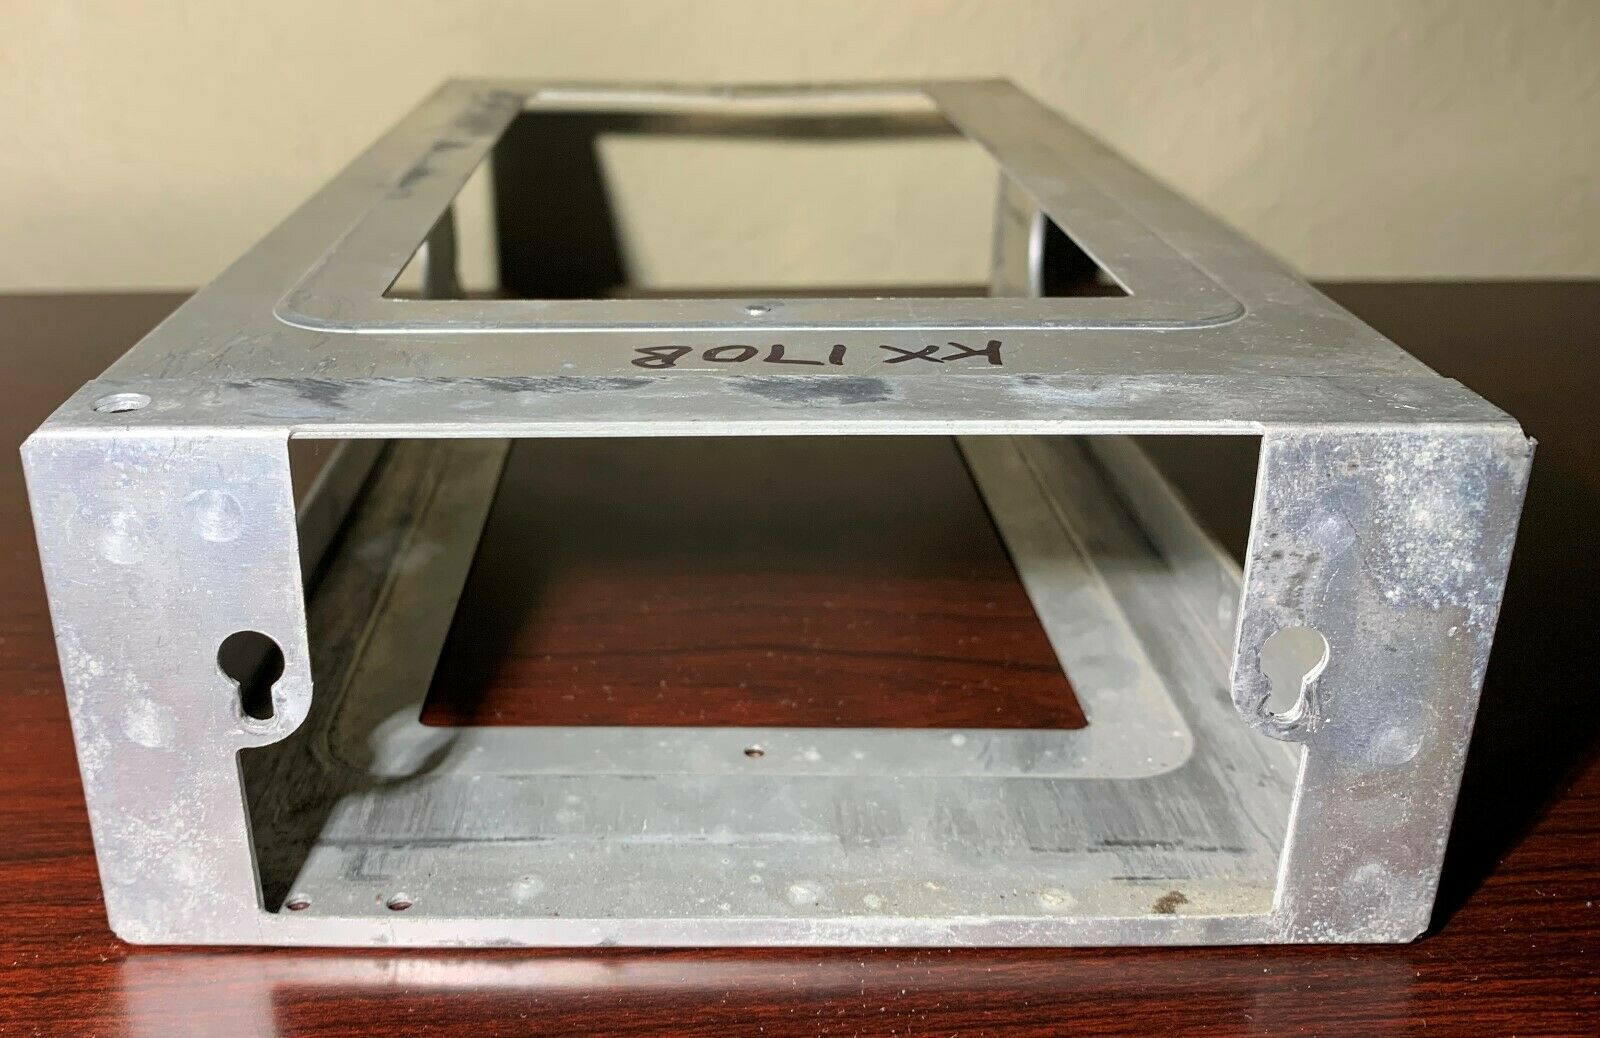 King KX-170 KX-175 KX-170B mounting tray rack no backplate